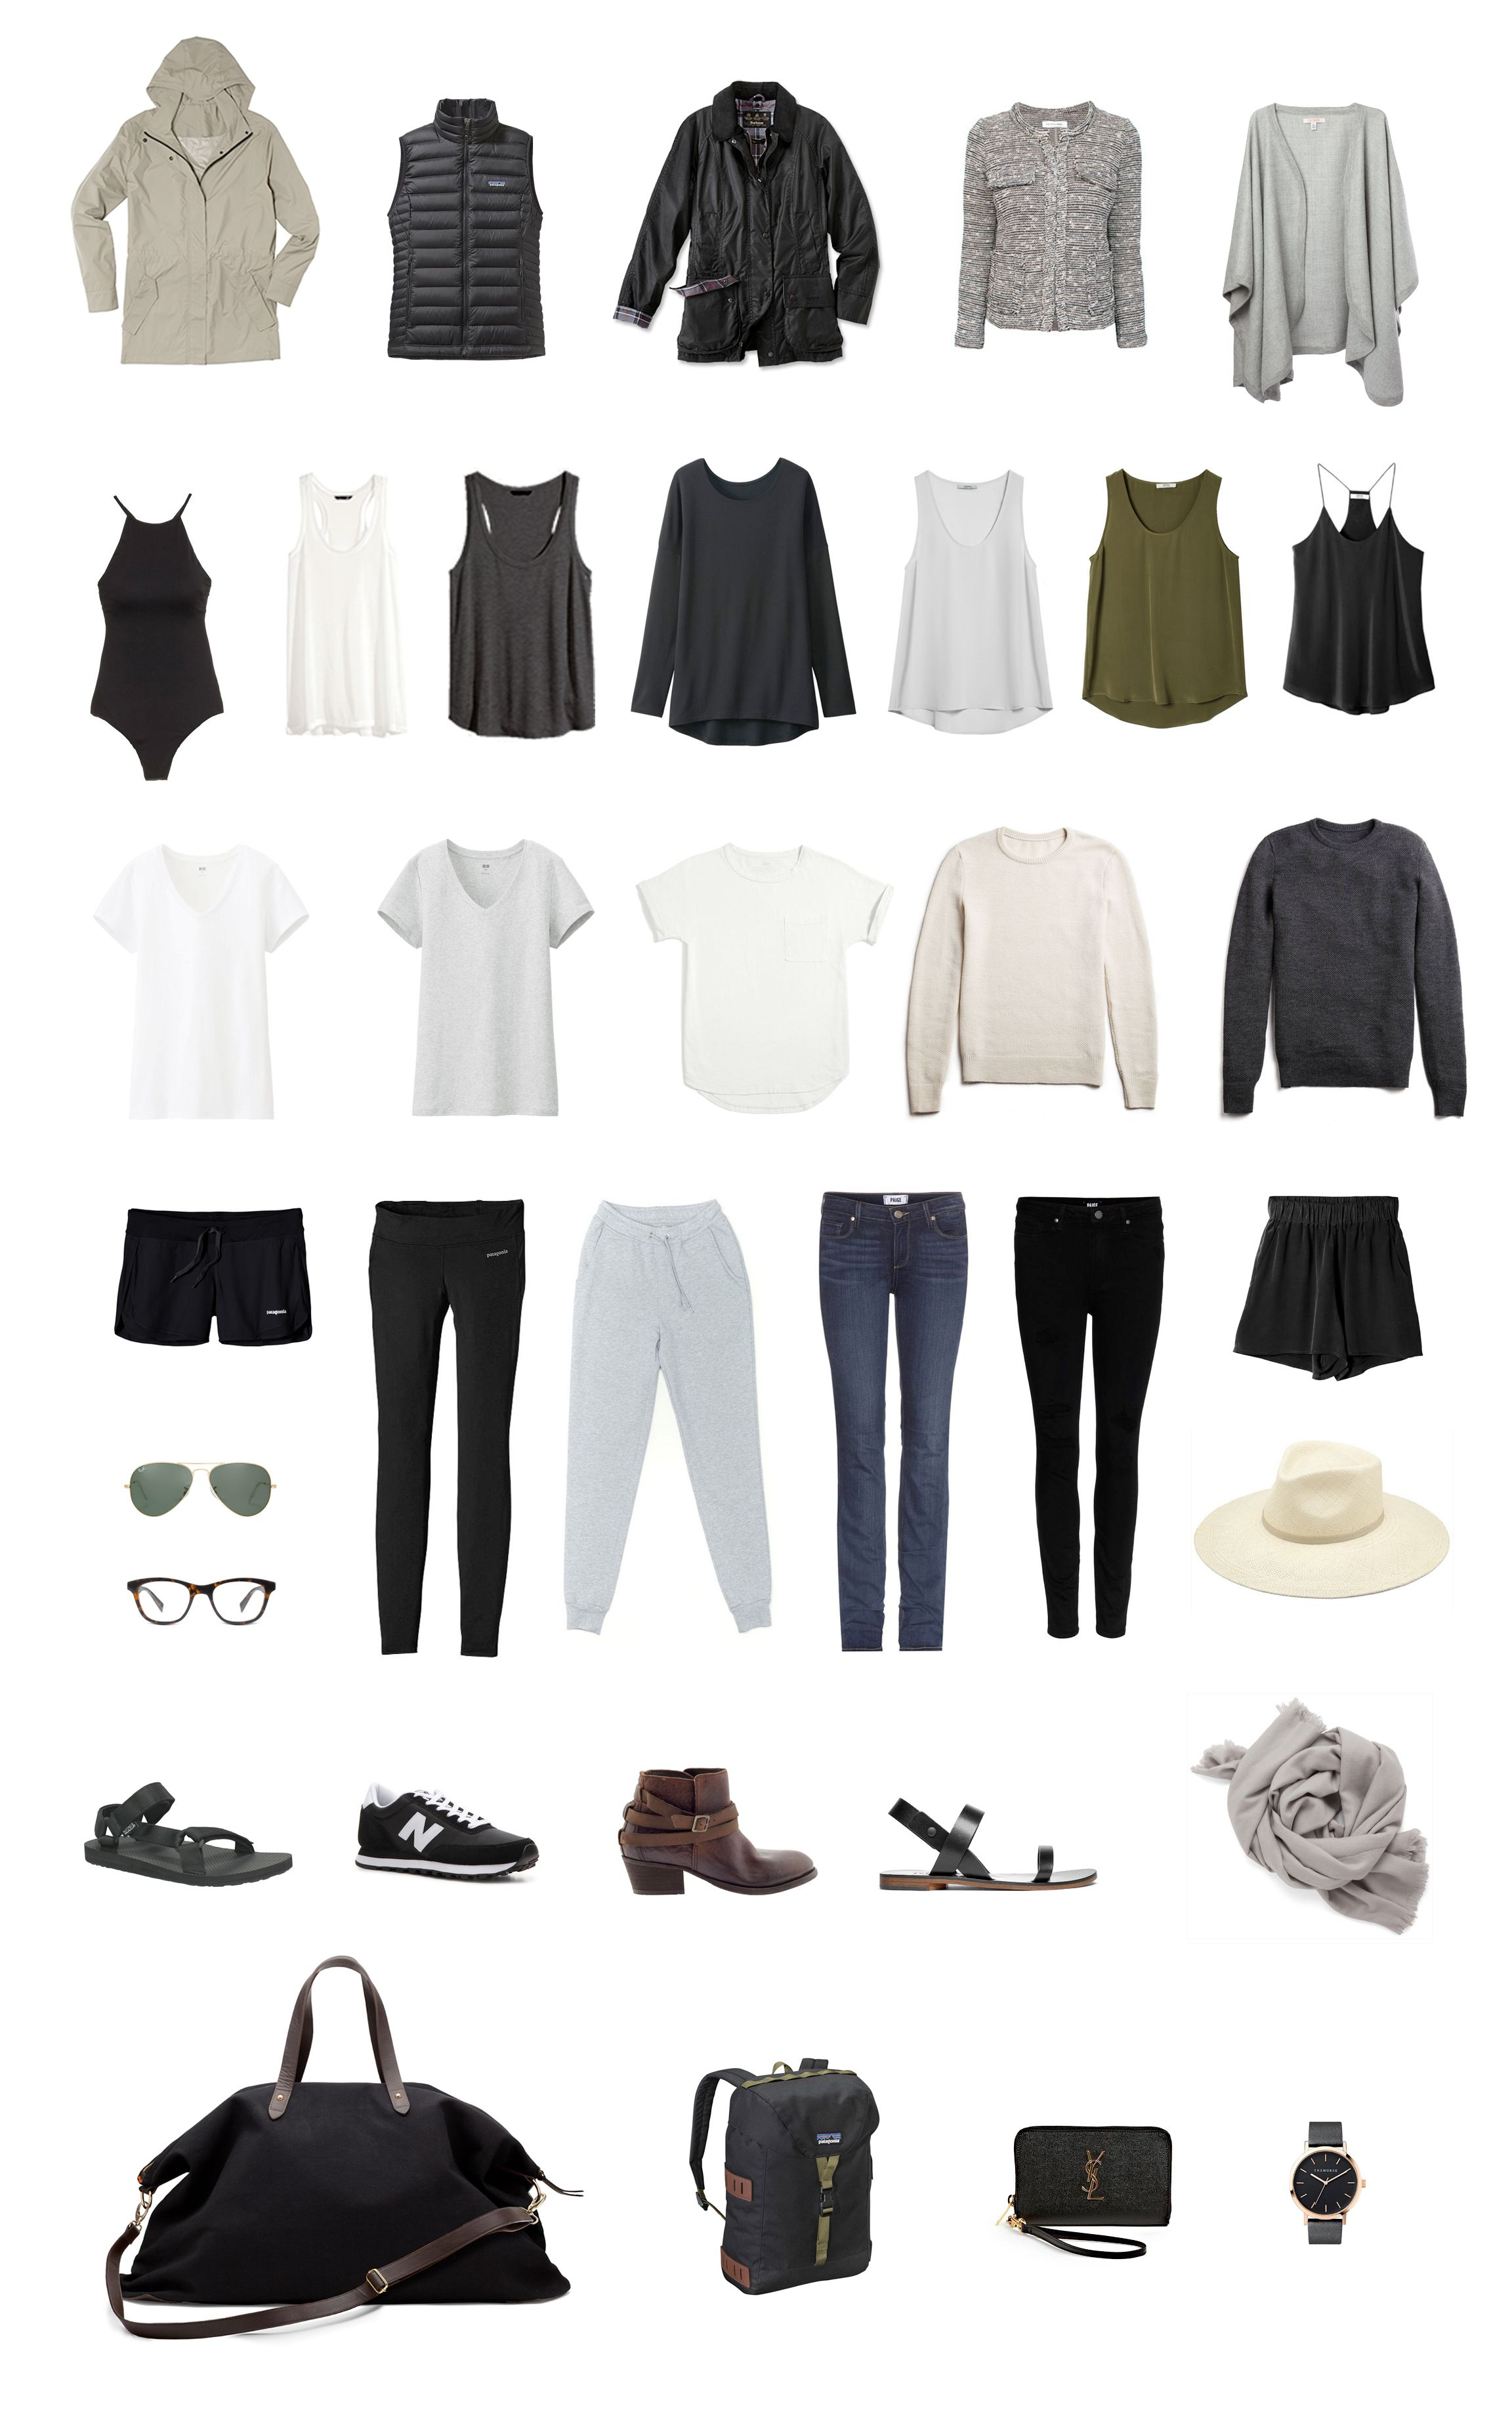 City to Coast: A Complete Guide On How To Pack Light For Stylish Women